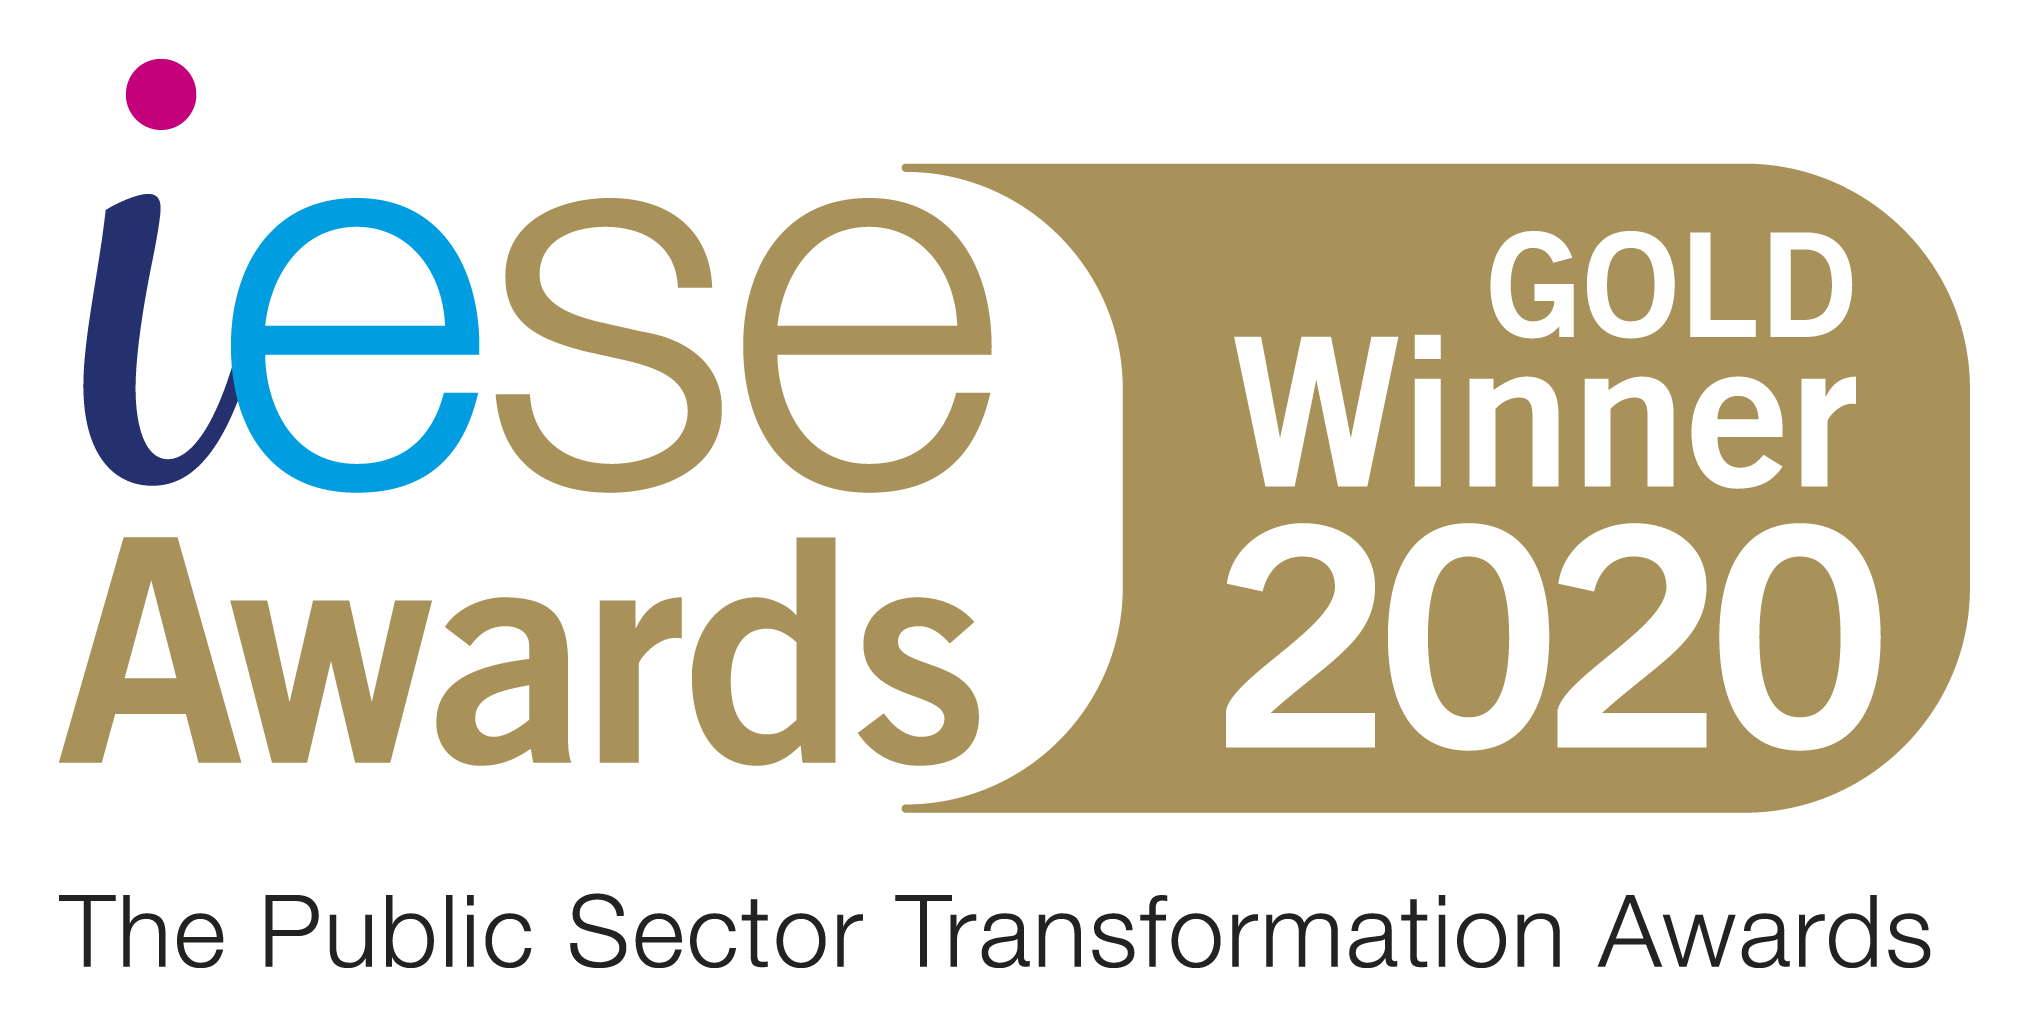 The Public Sector Transformation Awards Gold Winner 2020